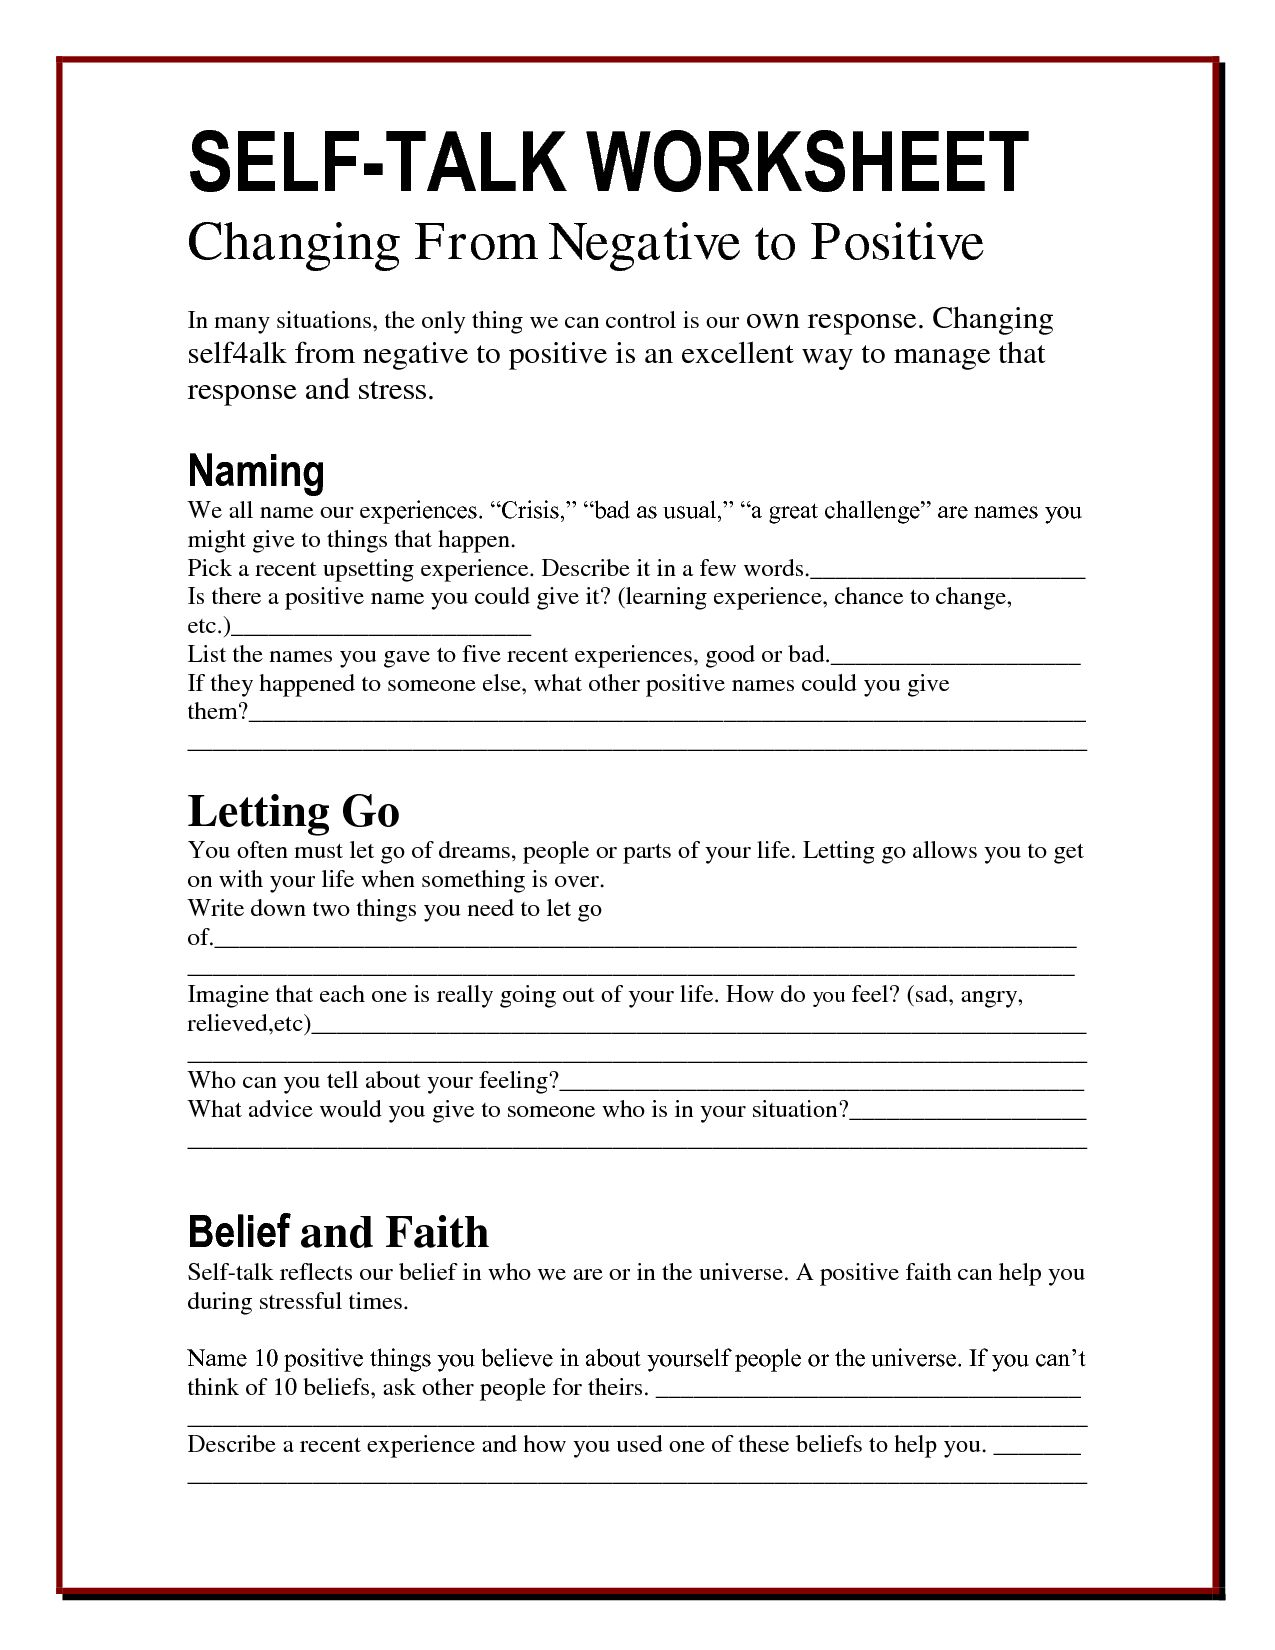 Worksheets Leadership Worksheets image from httpimg docstoccdn comthumborig119532431 png self talk worksheet changing negative to positive behaviour